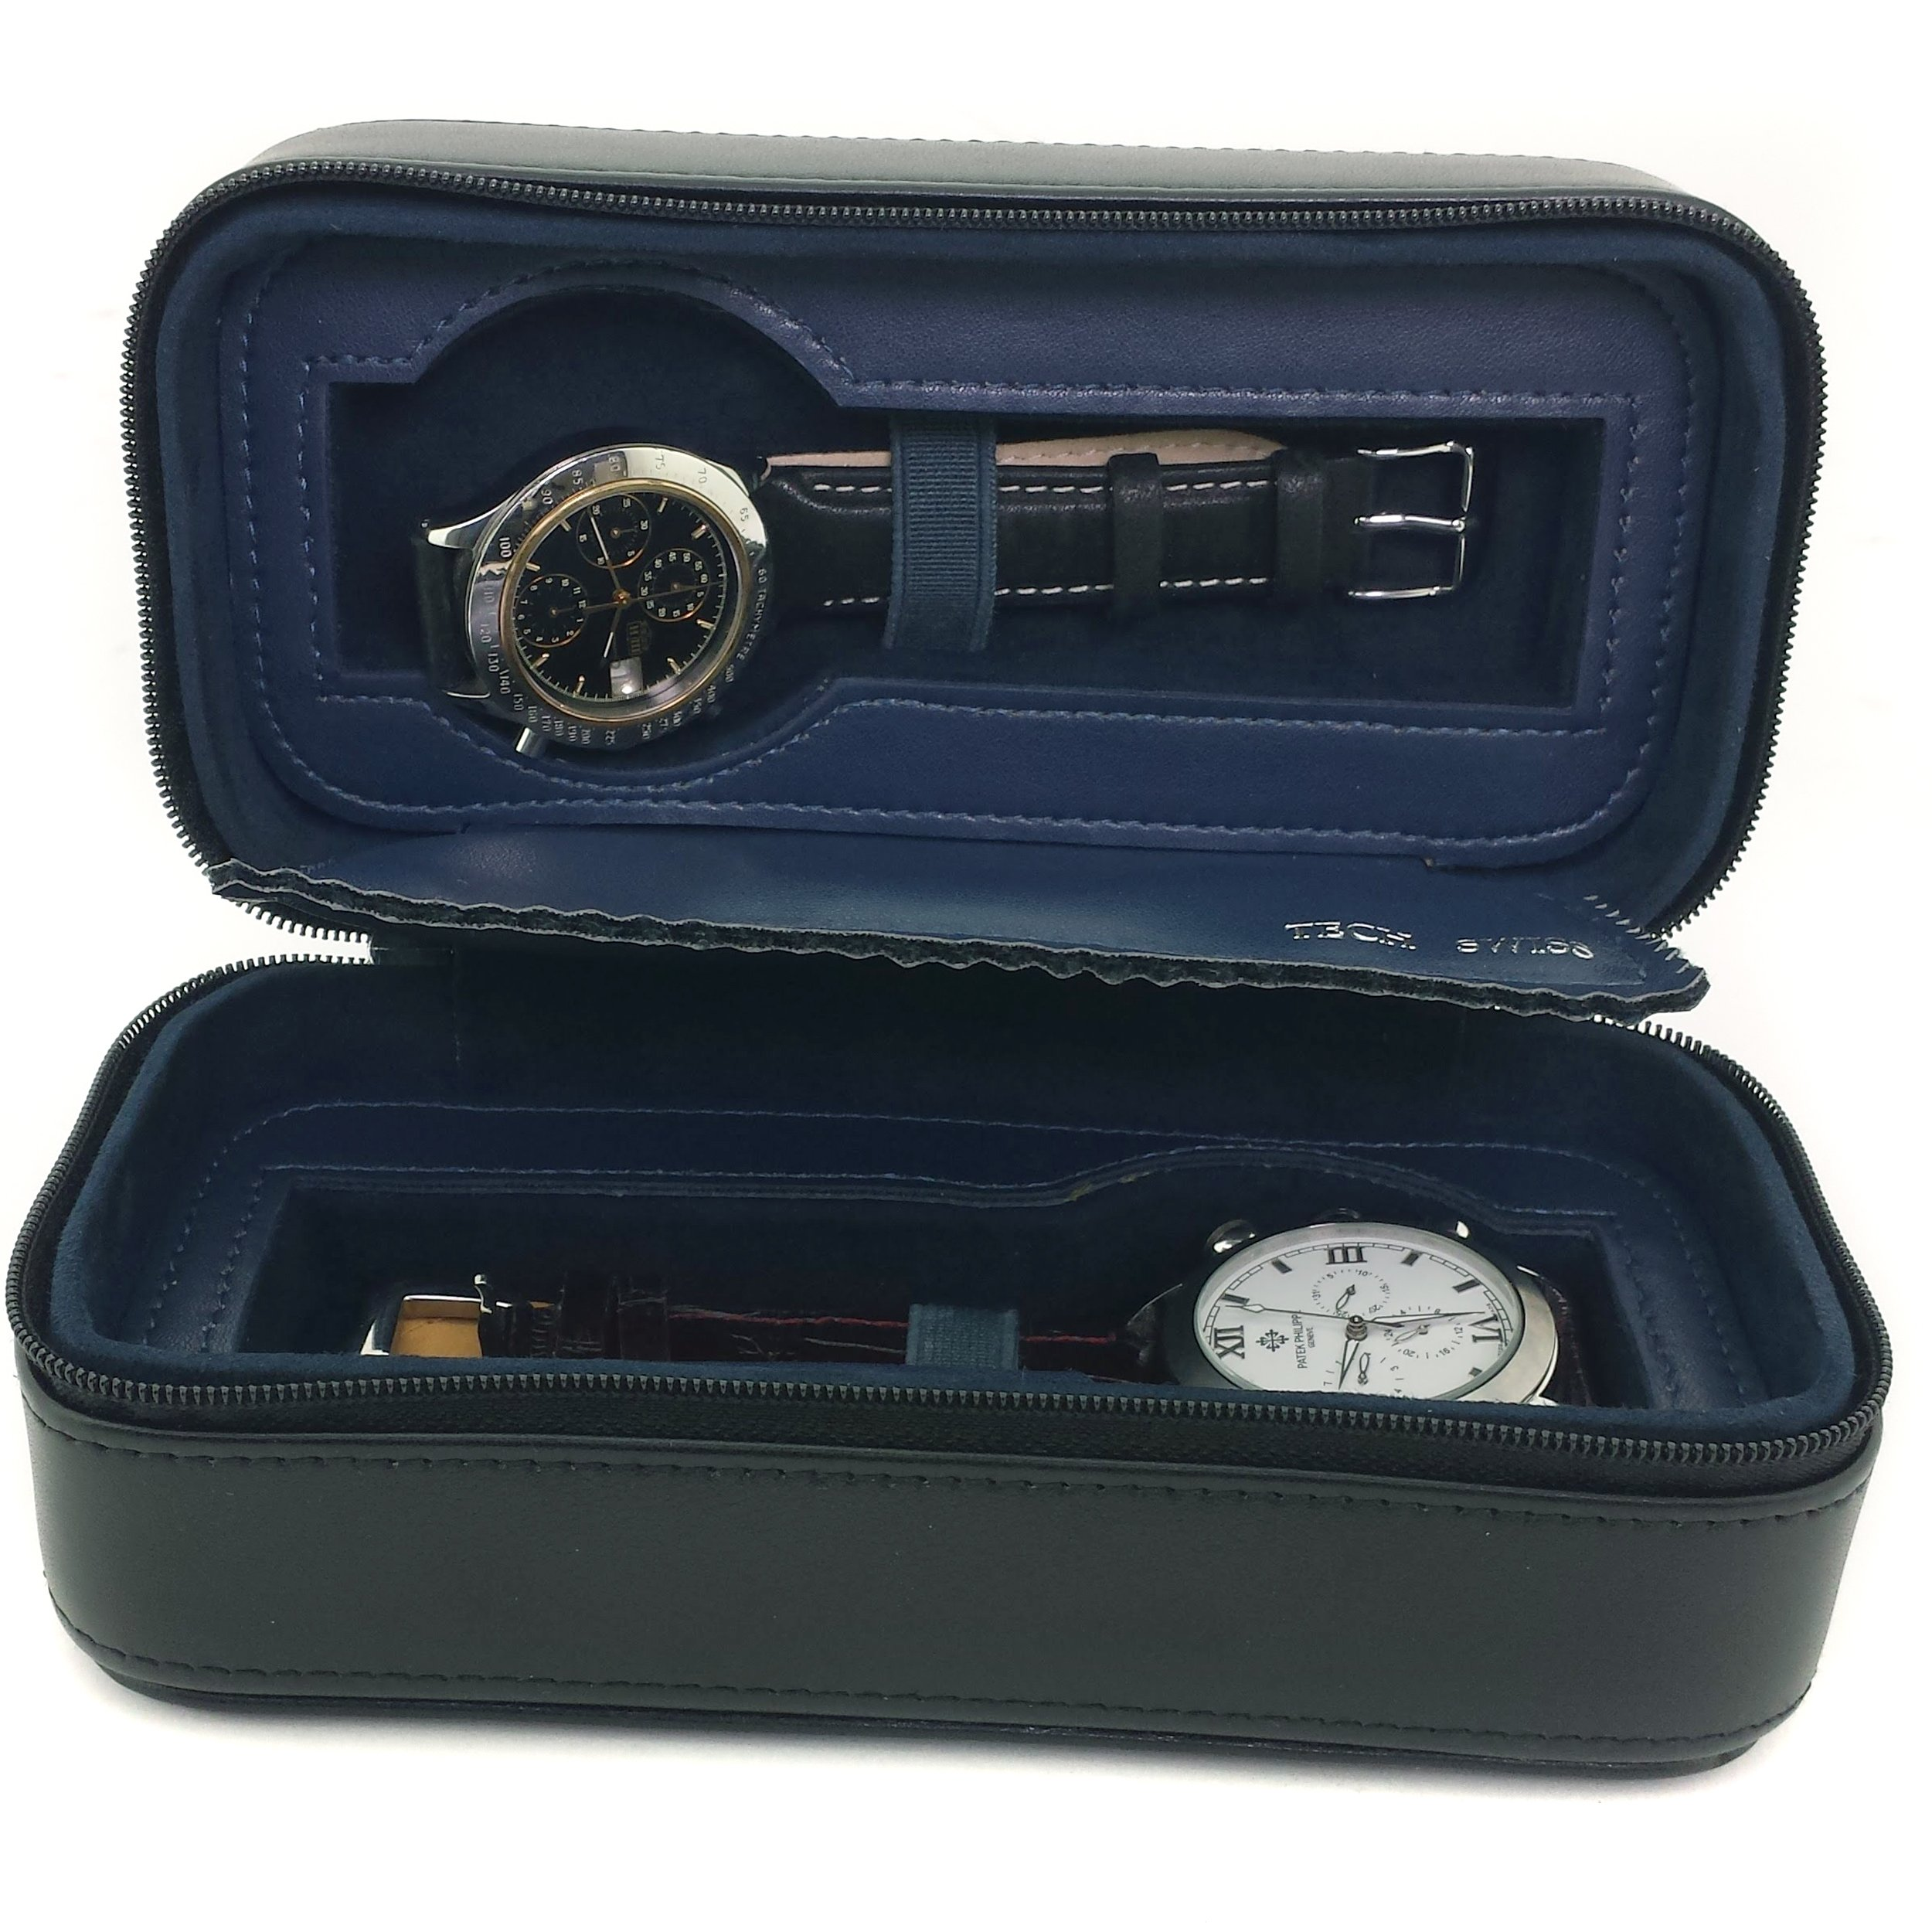 Travel Watch Case Compact for 2 Watches Storage Protection Zipper (Black / Navy)